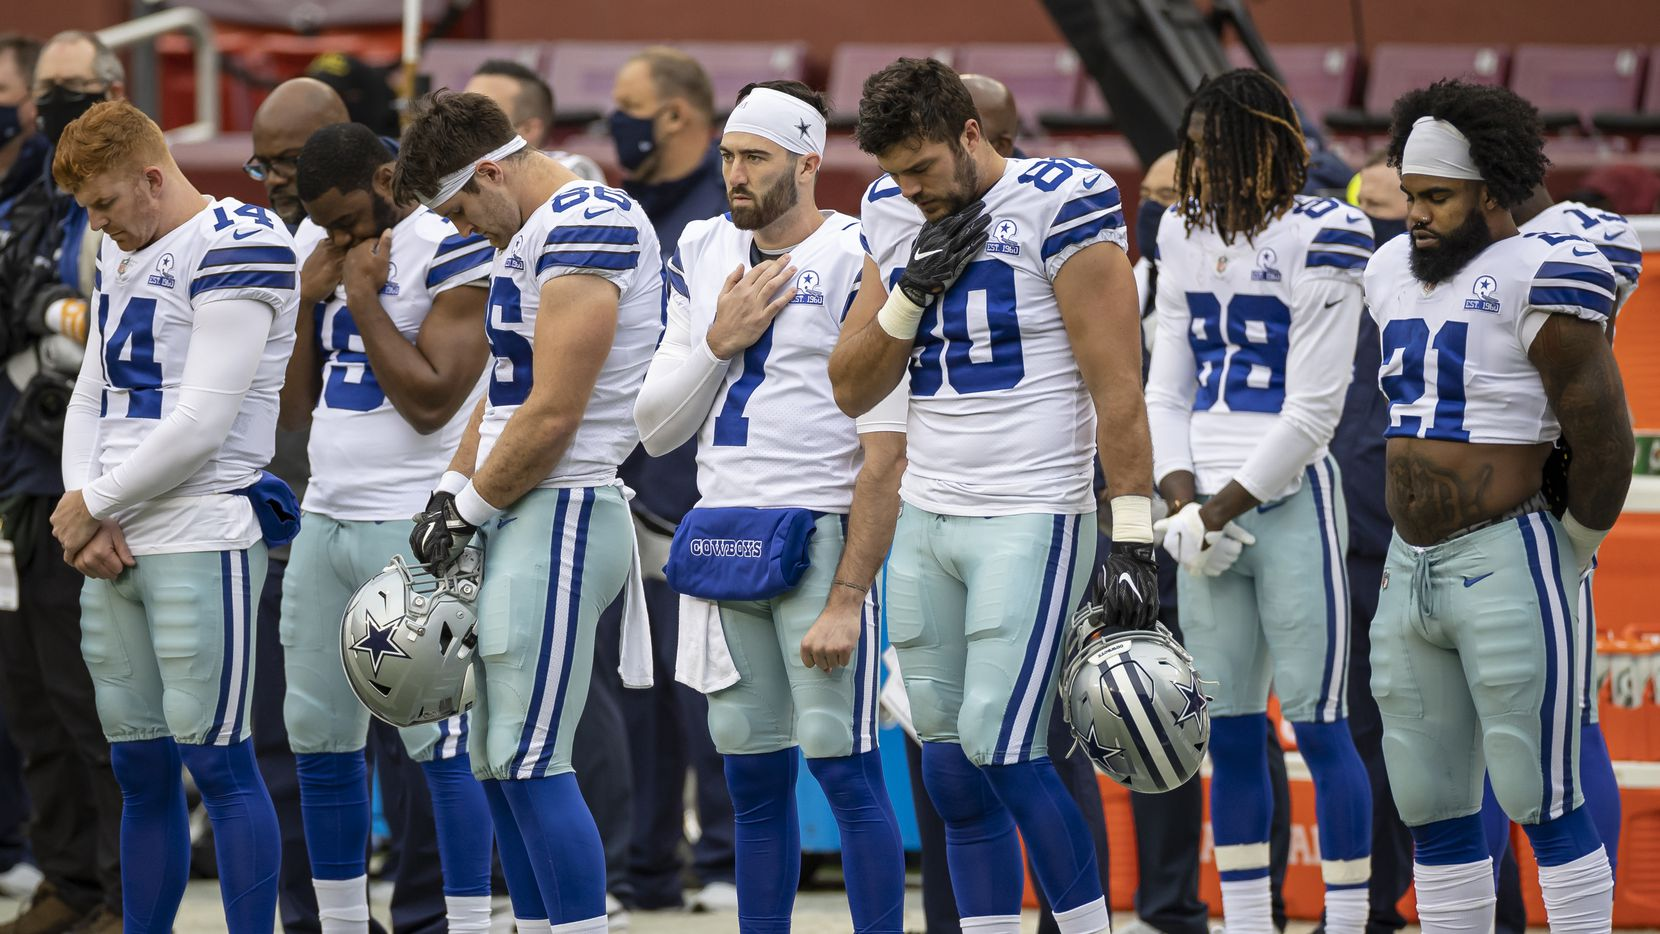 LANDOVER, MD - OCTOBER 25: Andy Dalton #14, Ezekiel Elliott #21, CeeDee Lamb #88, and Ben DiNucci #7 of the Dallas Cowboys stand with teammates during the playing of the National Anthem before the game against the Washington Football Team at FedExField on October 25, 2020 in Landover, Maryland.